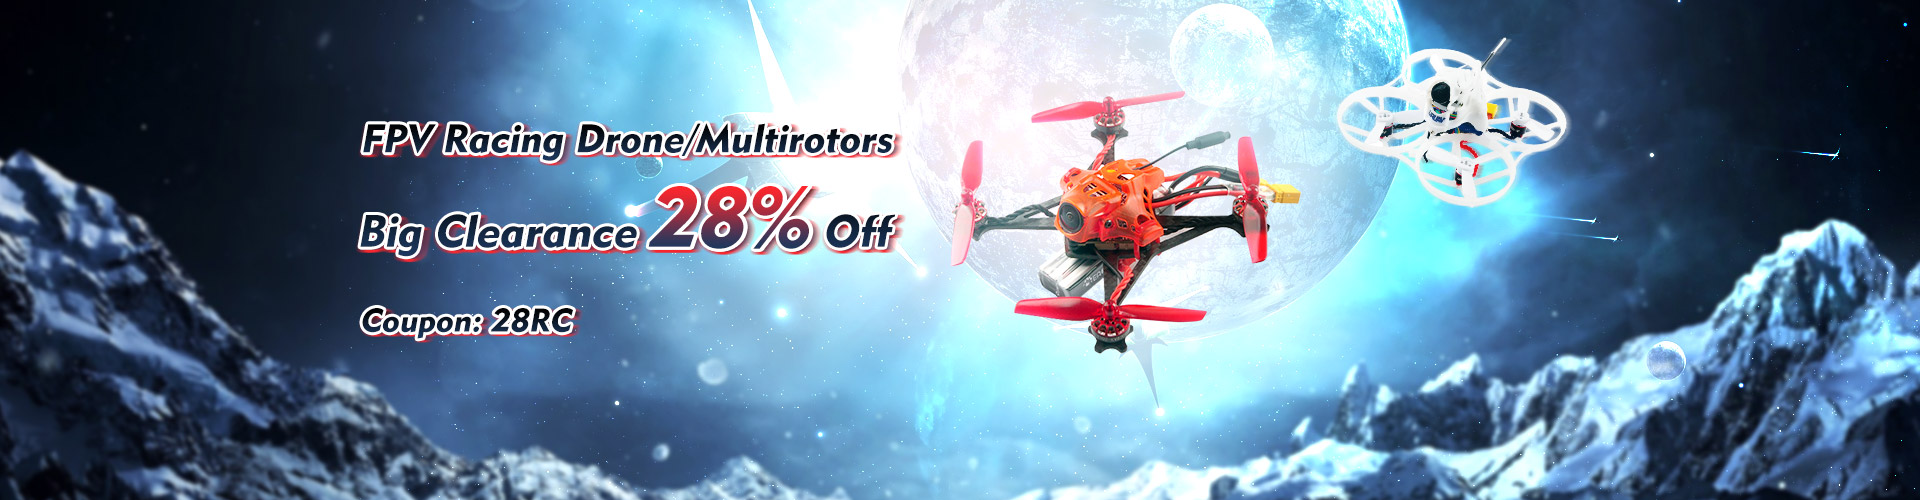 28% Off Big Clearance For FPV Racing Drone/Multirotors